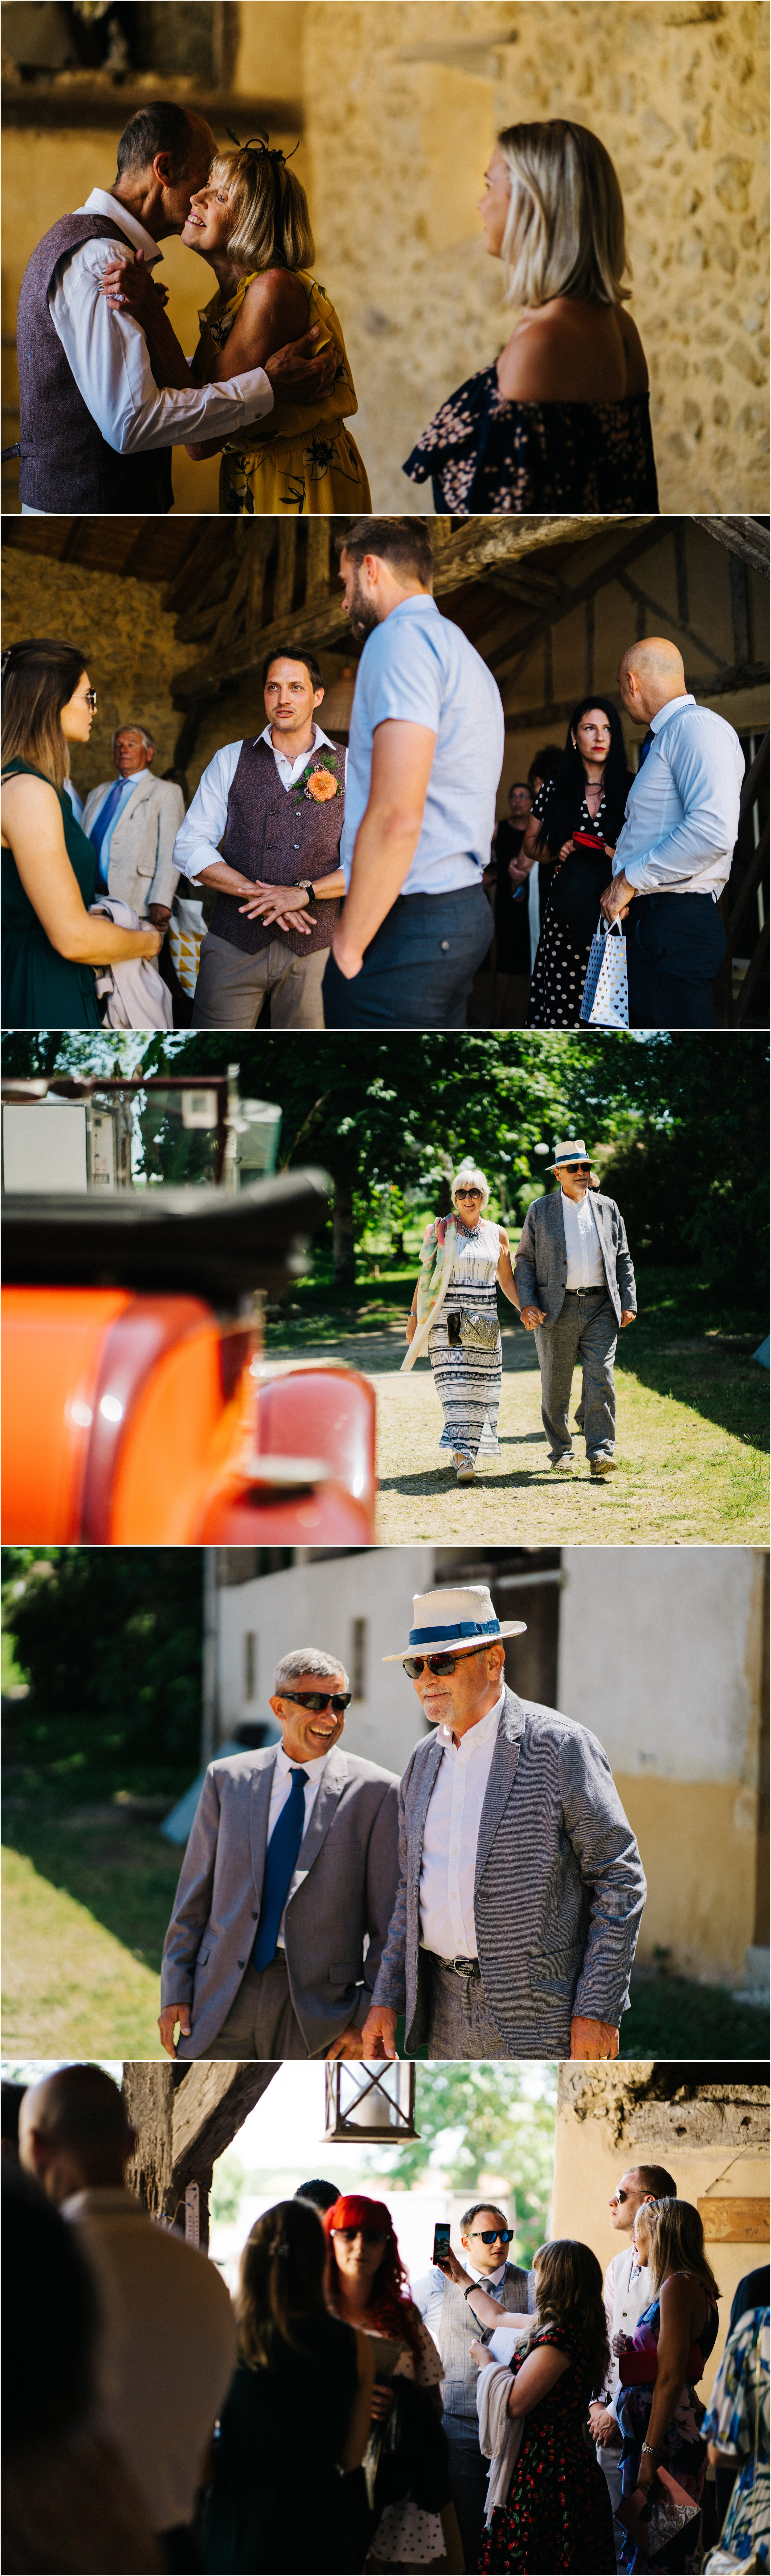 France destination garden wedding photographer_0086.jpg